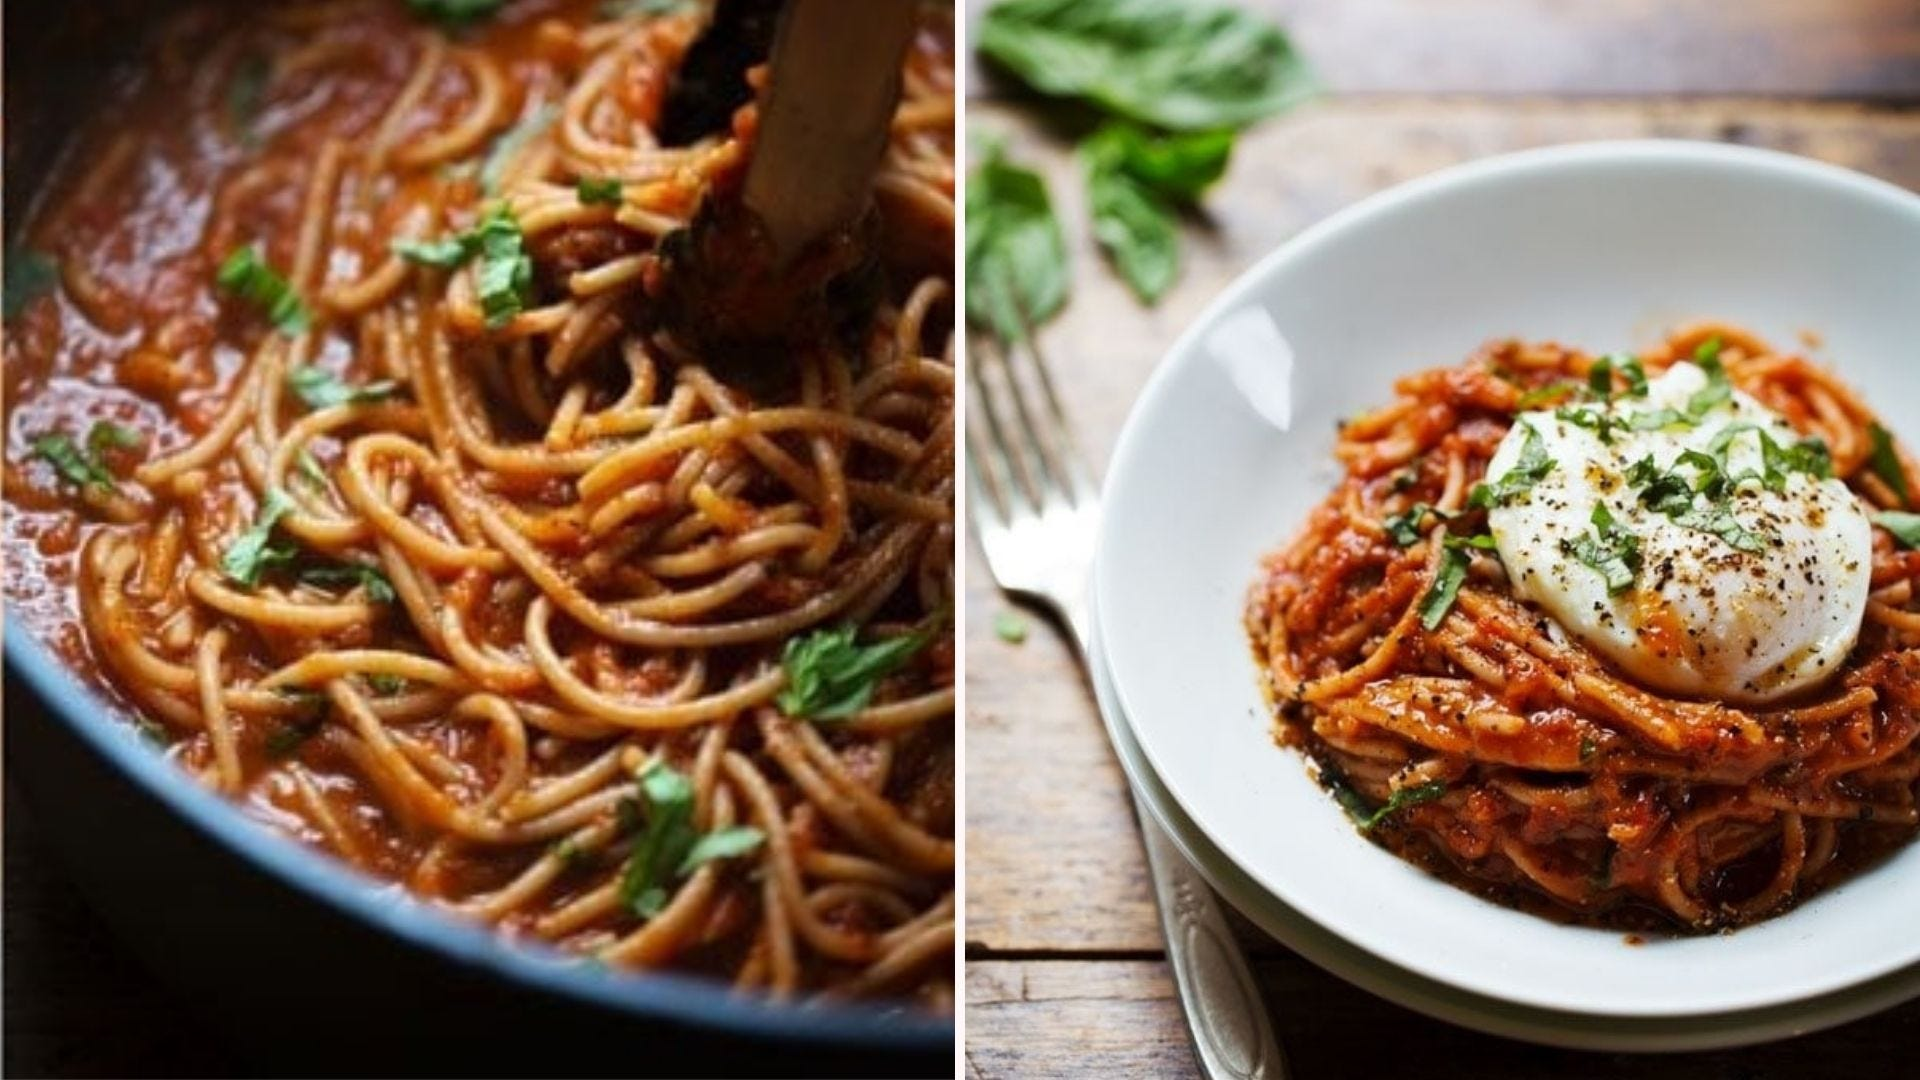 Two images of spaghetti marinara: the left image is of spaghetti being tossed in red sauce and the right image is of a plate of spaghetti topped with a poached egg, cracked pepper and fresh basil.